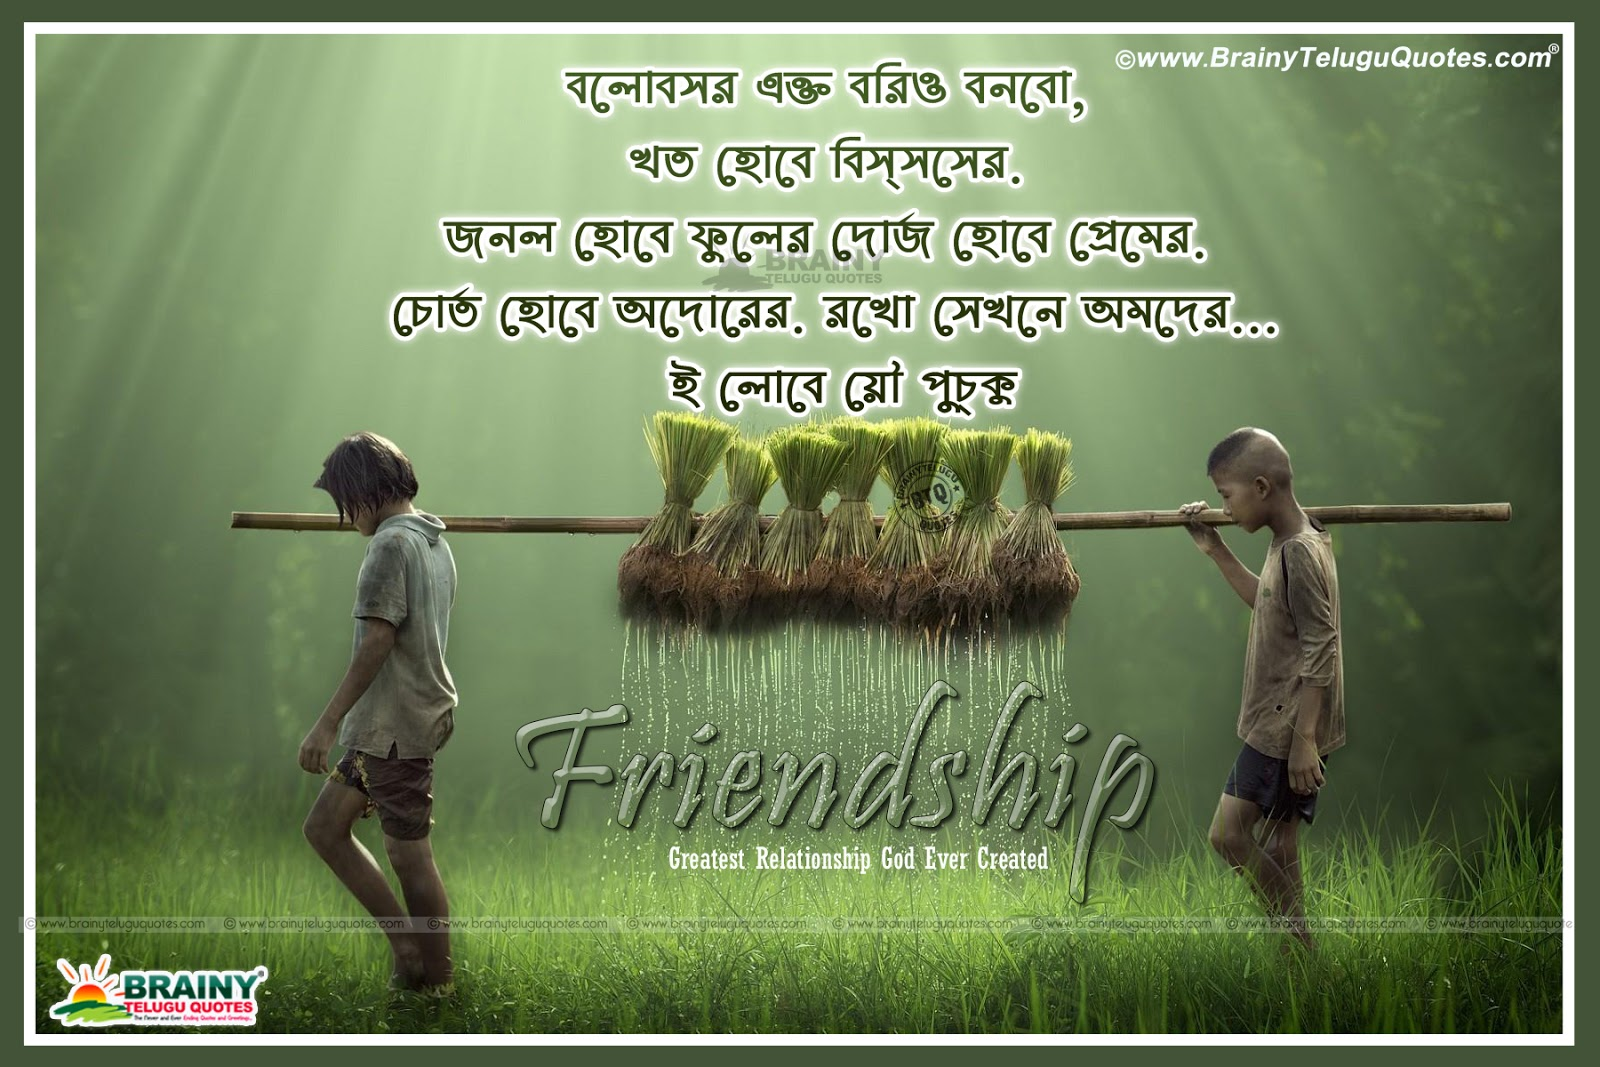 Latest wallpapers of friendship quotes